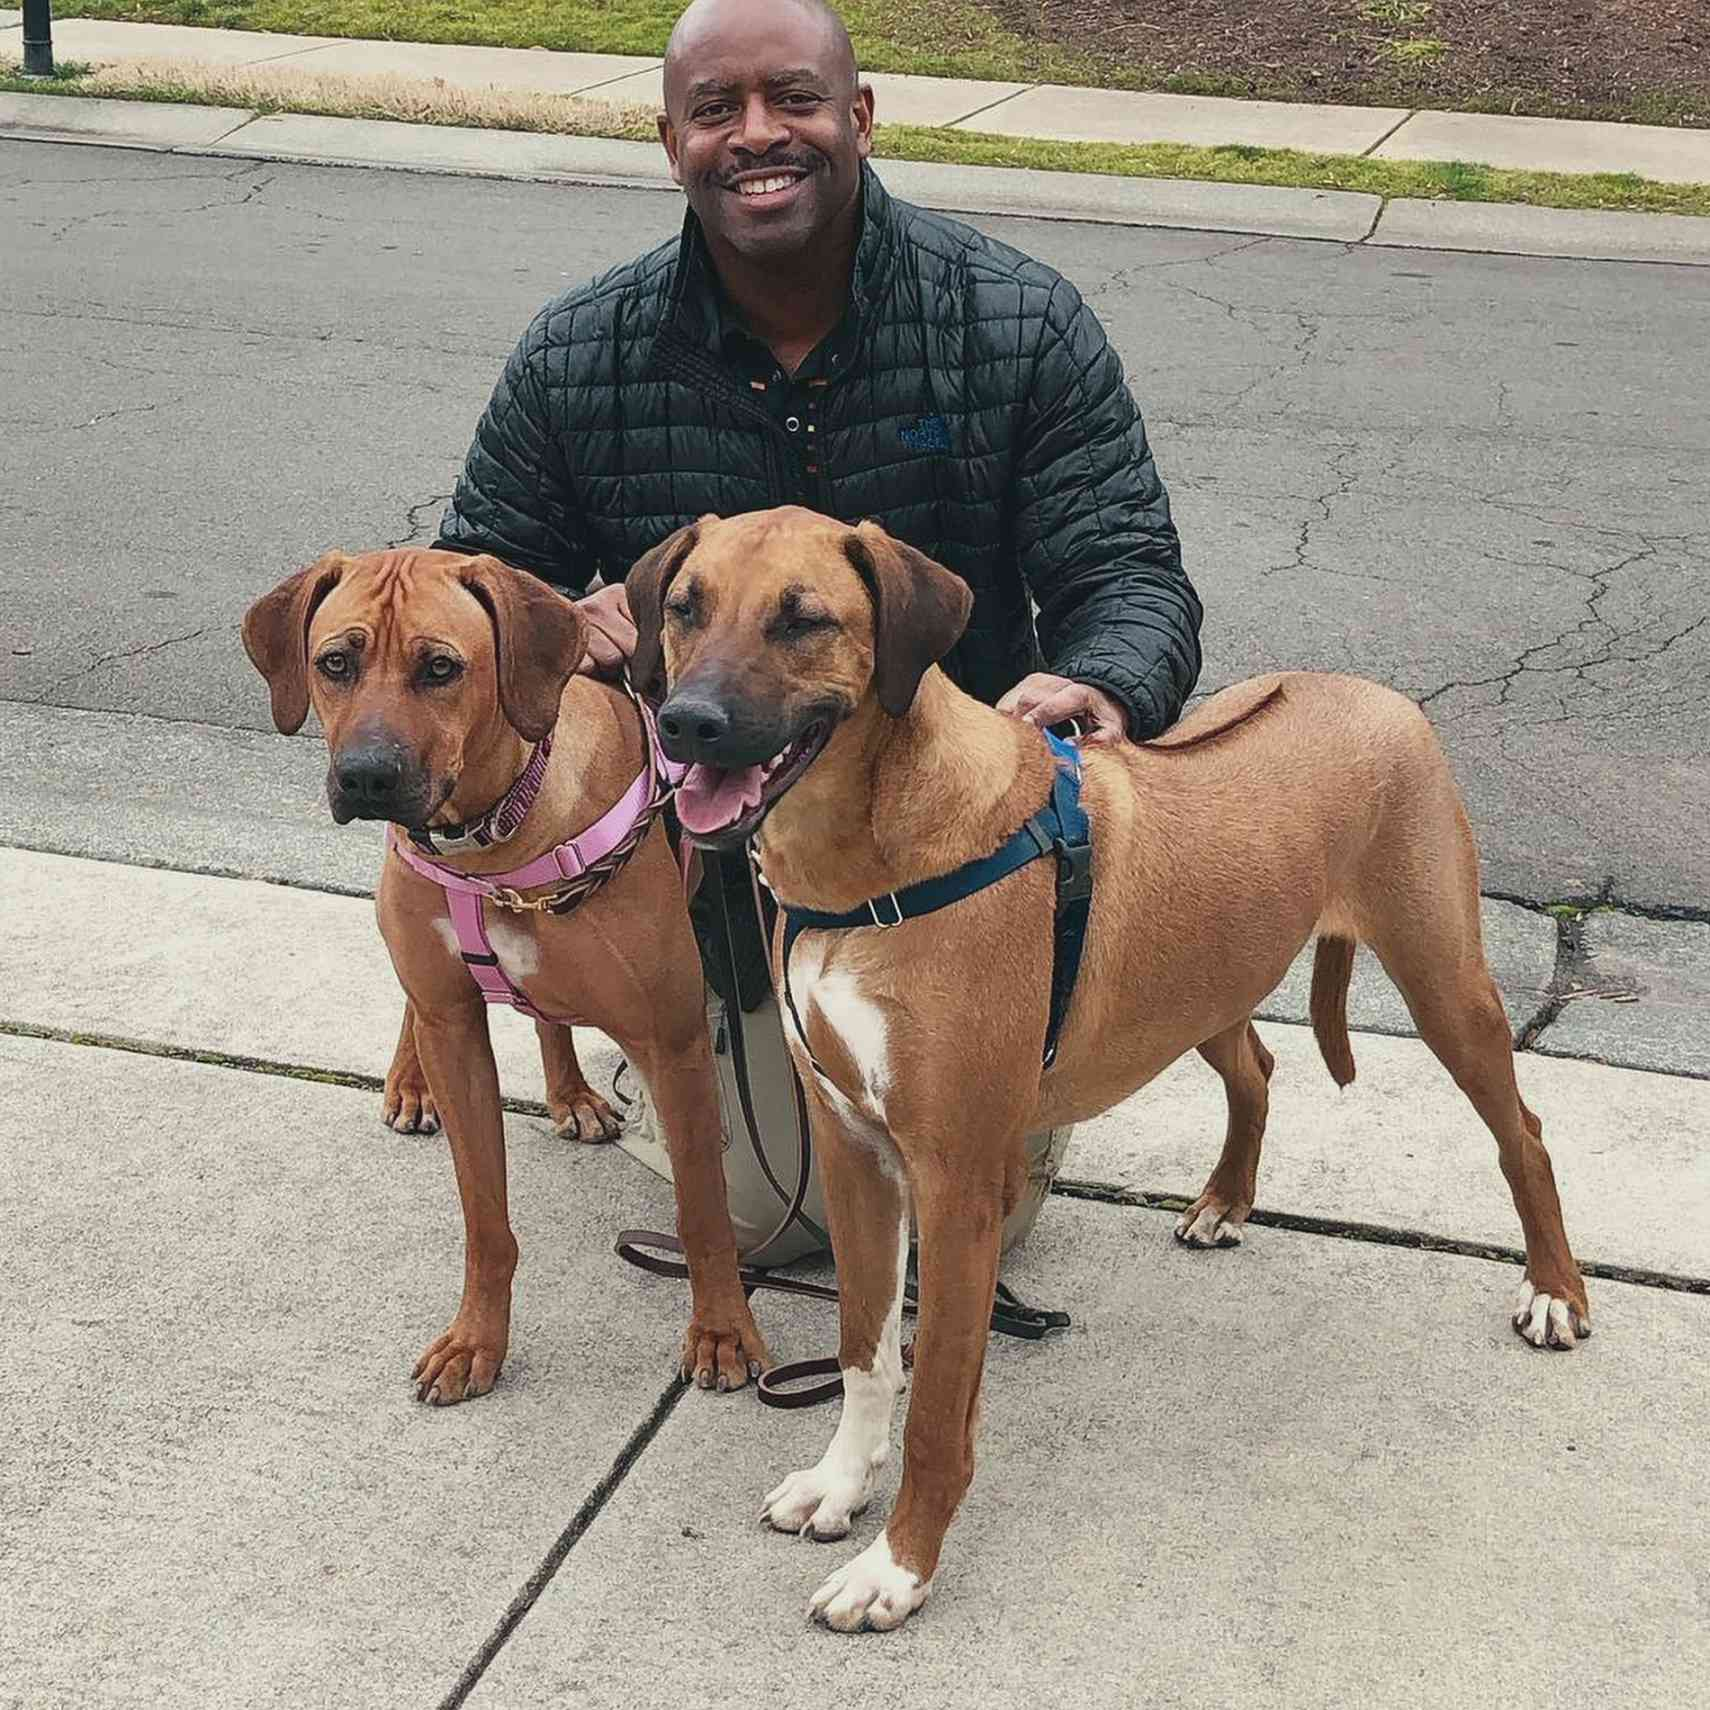 Leland Melvin with Roux and Zorro